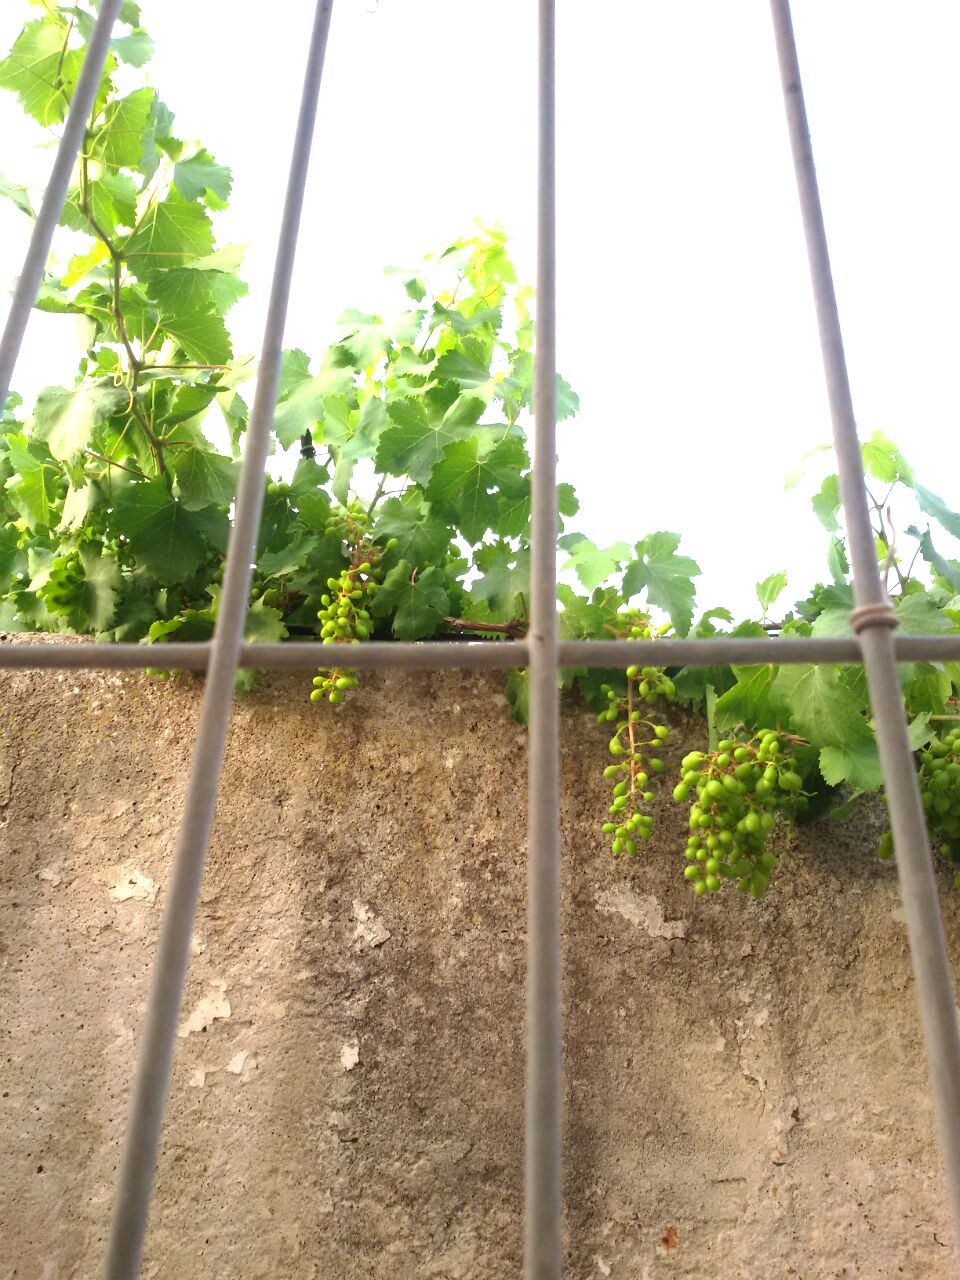 Sour grapes in Barta'a.jpg